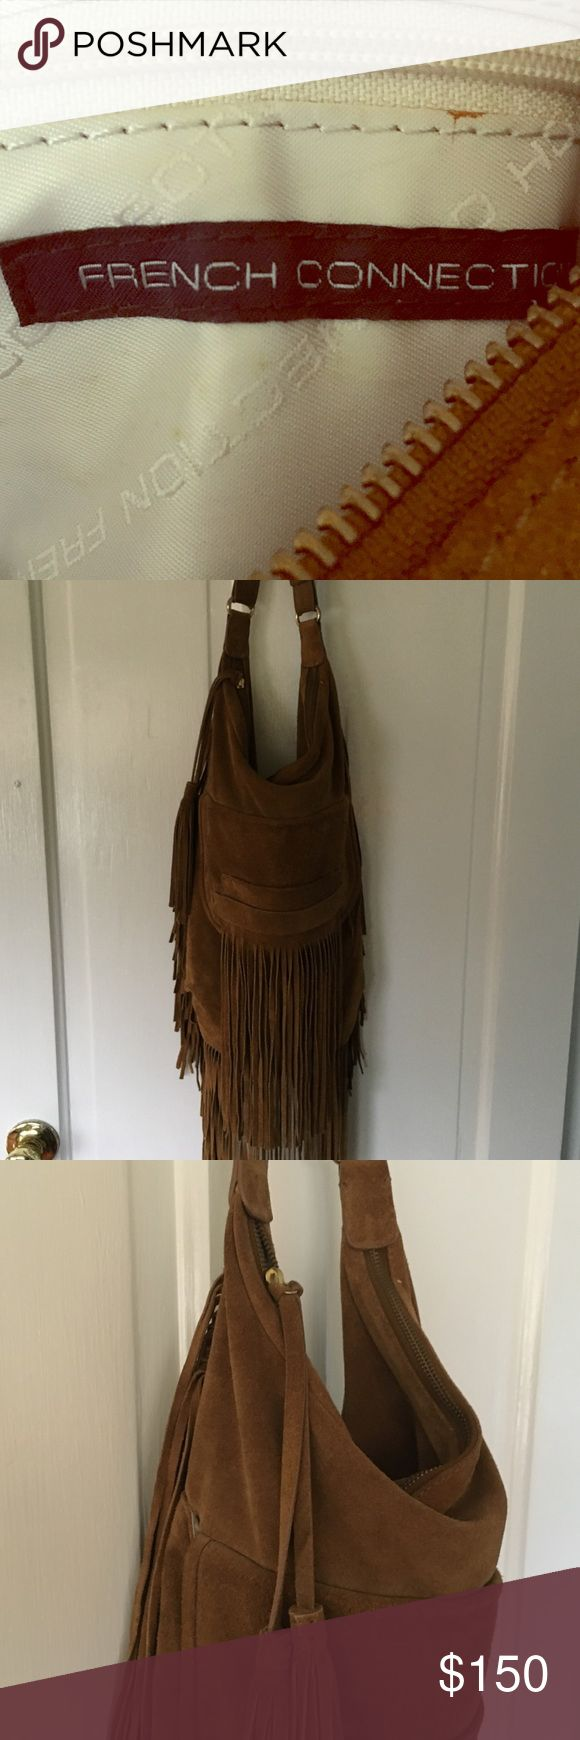 French Connection Tan Suede Fringe Purse Suede fringe over the shoulder purse. I have only wore this purse once for an event so it's basically brand new. French Connection Bags Shoulder Bags